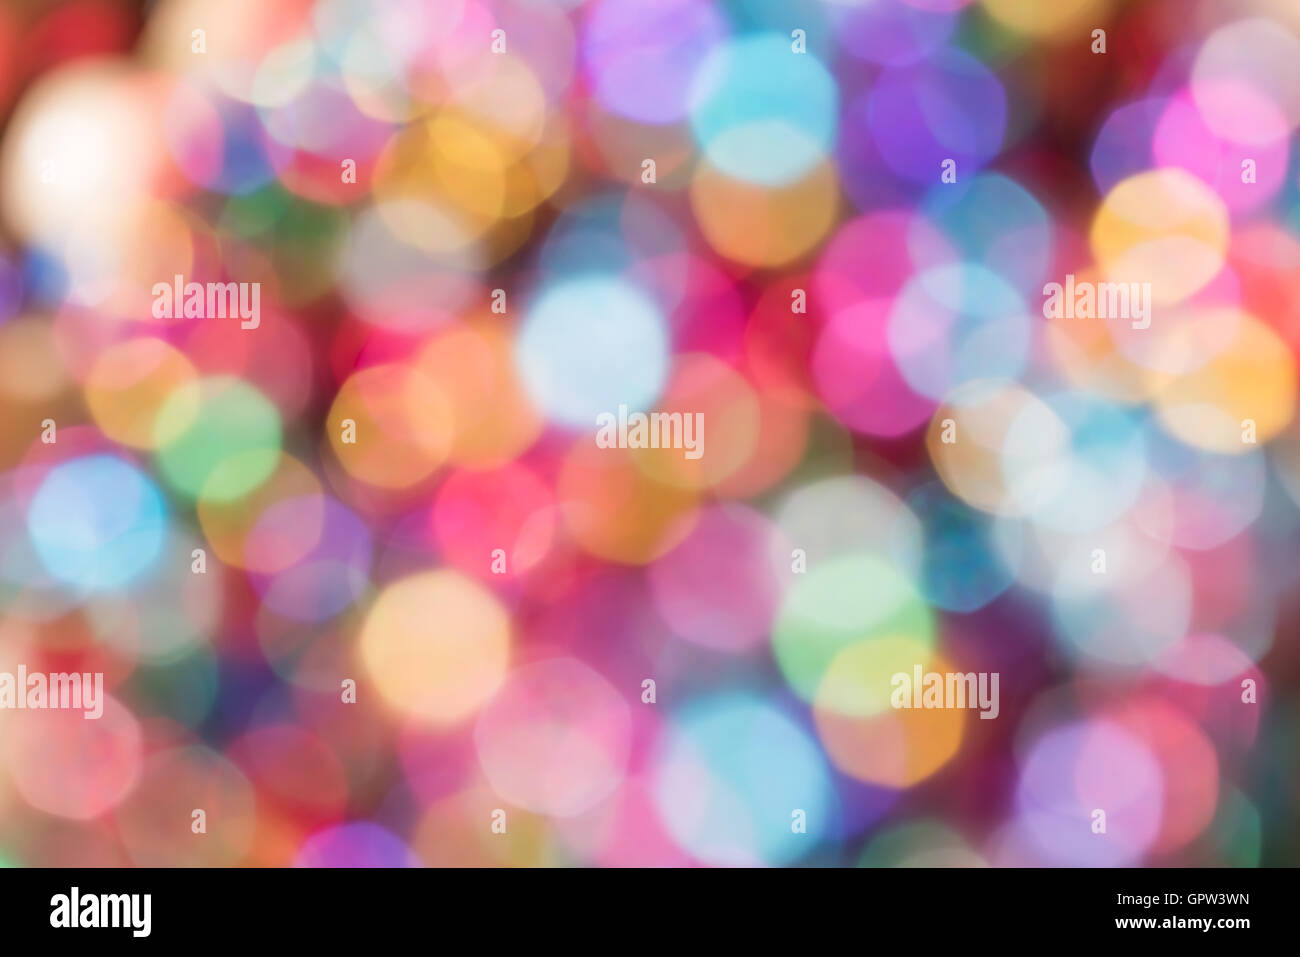 Abstract colorfull blurry Christmas bubbles background - Stock Image